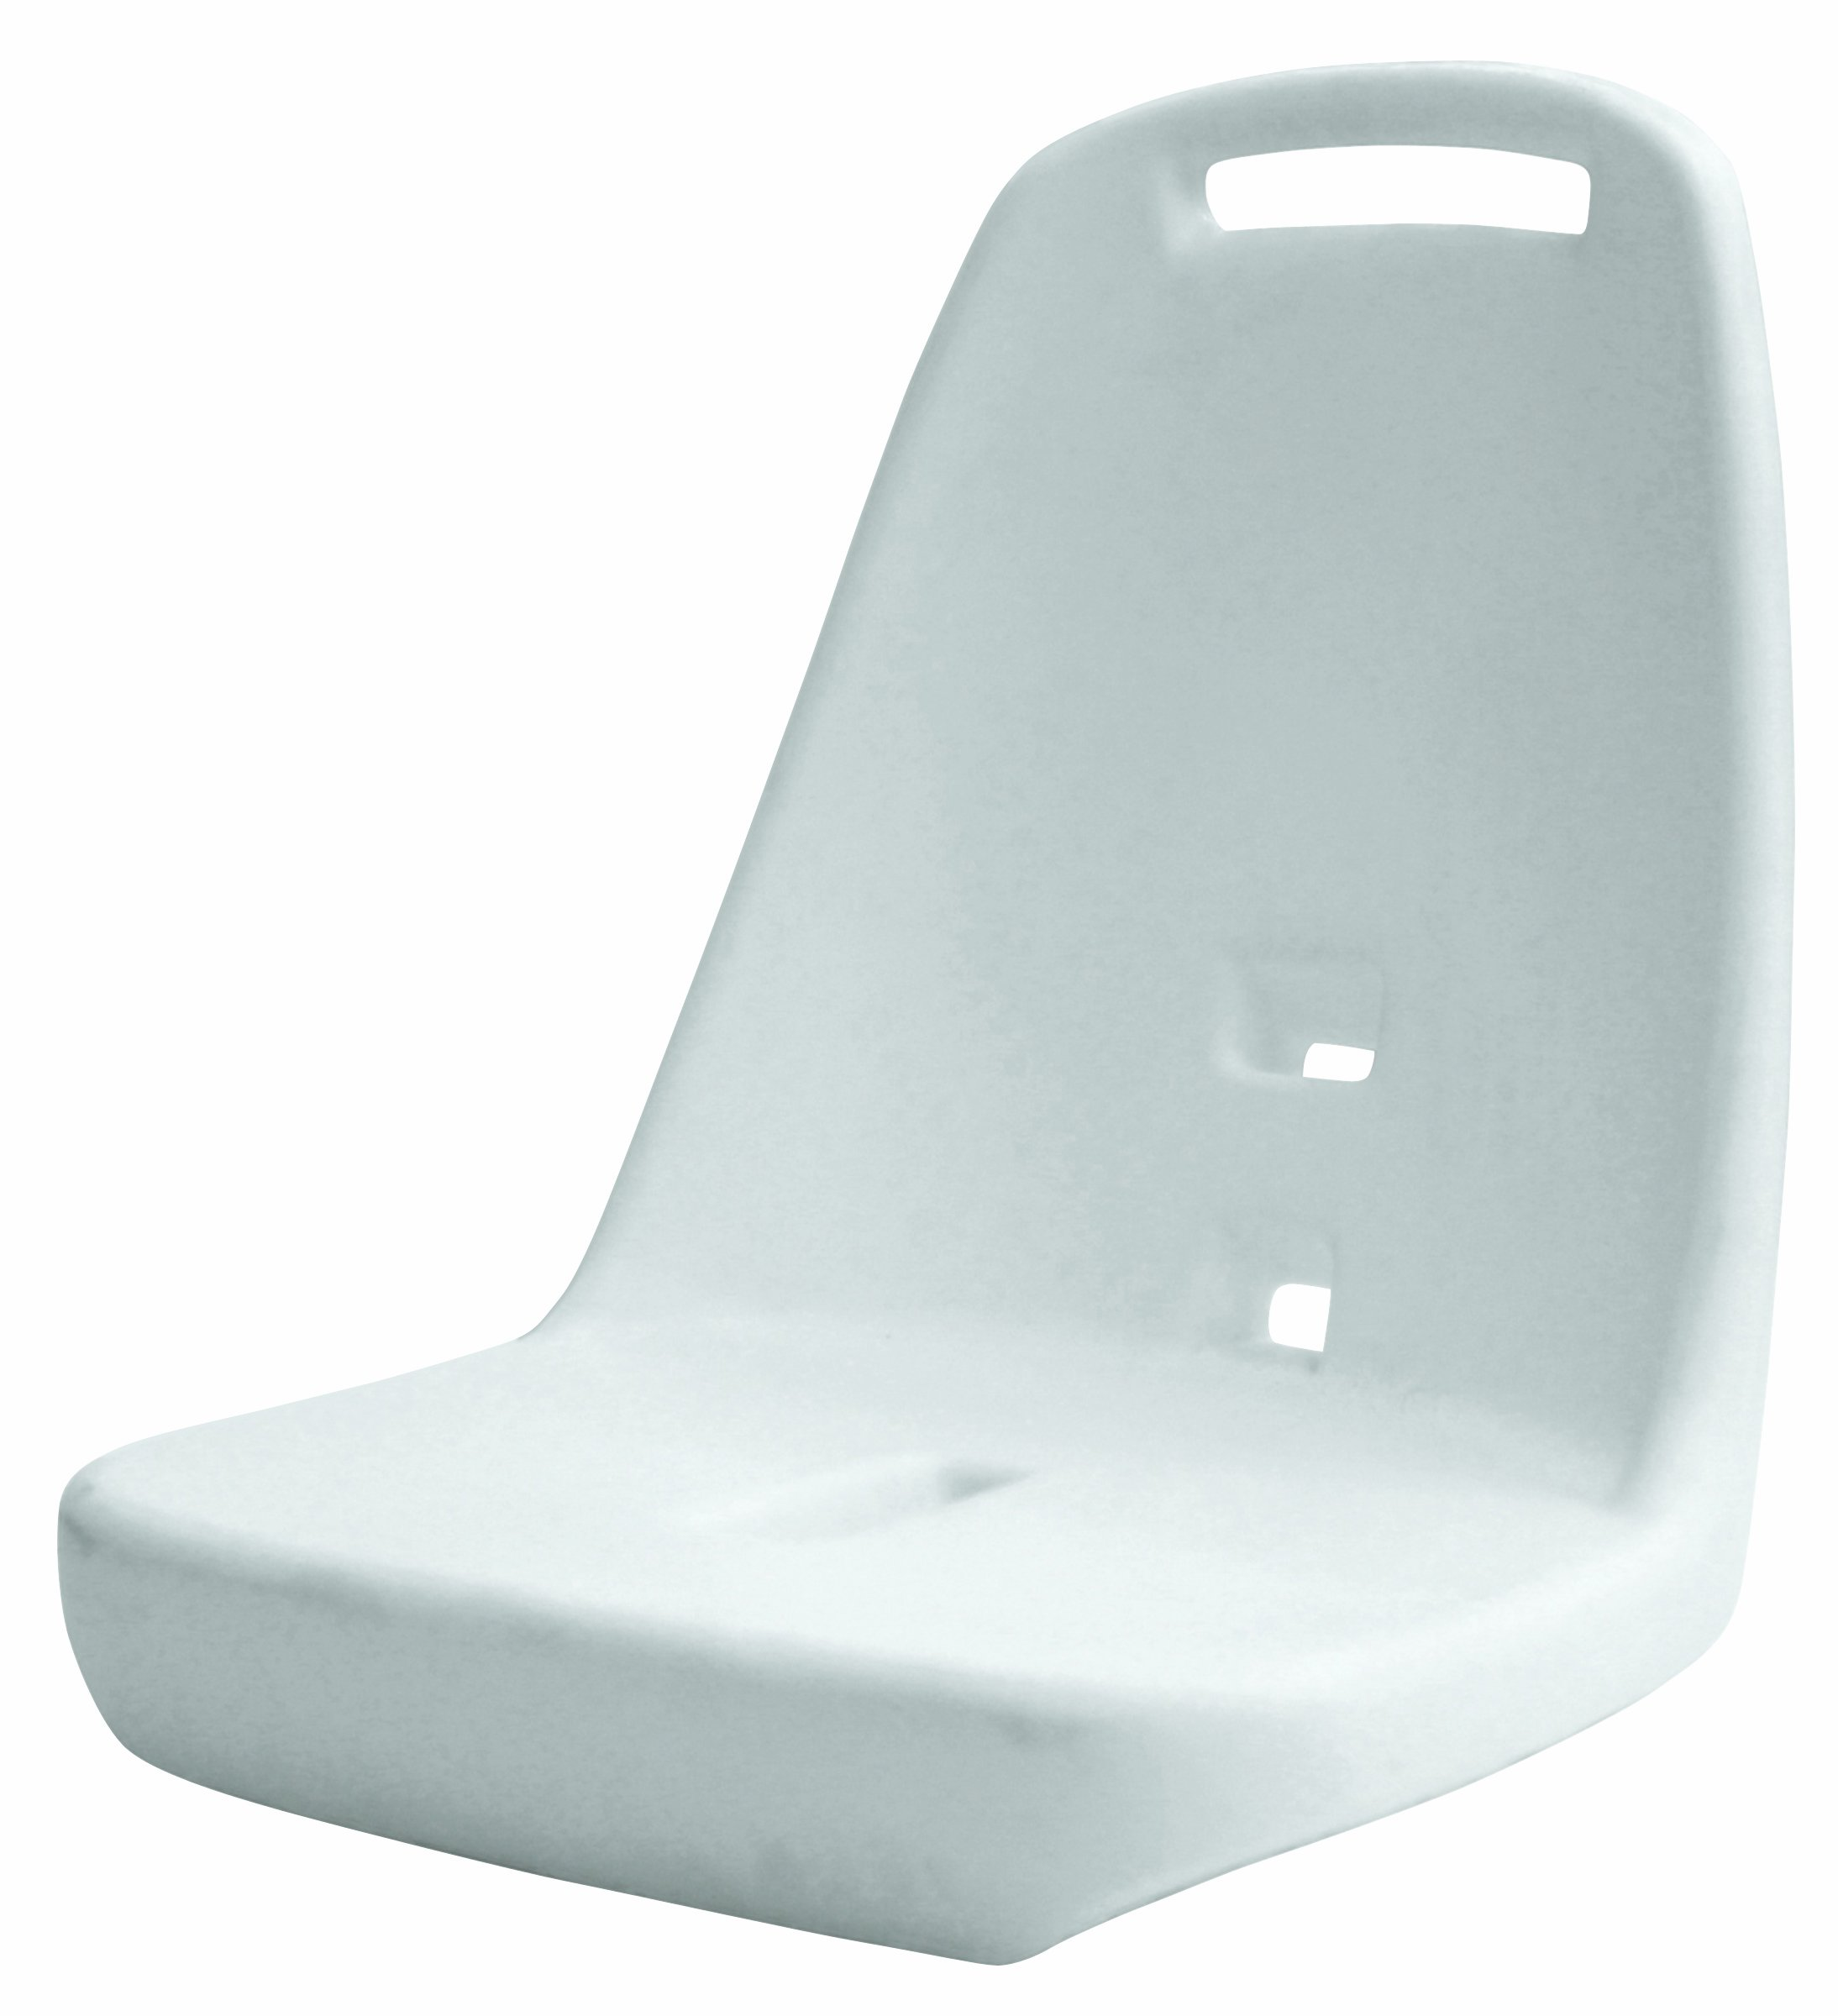 Wise 8WD013-1-710 Rotomolded Standard Helm Chair Shell, White